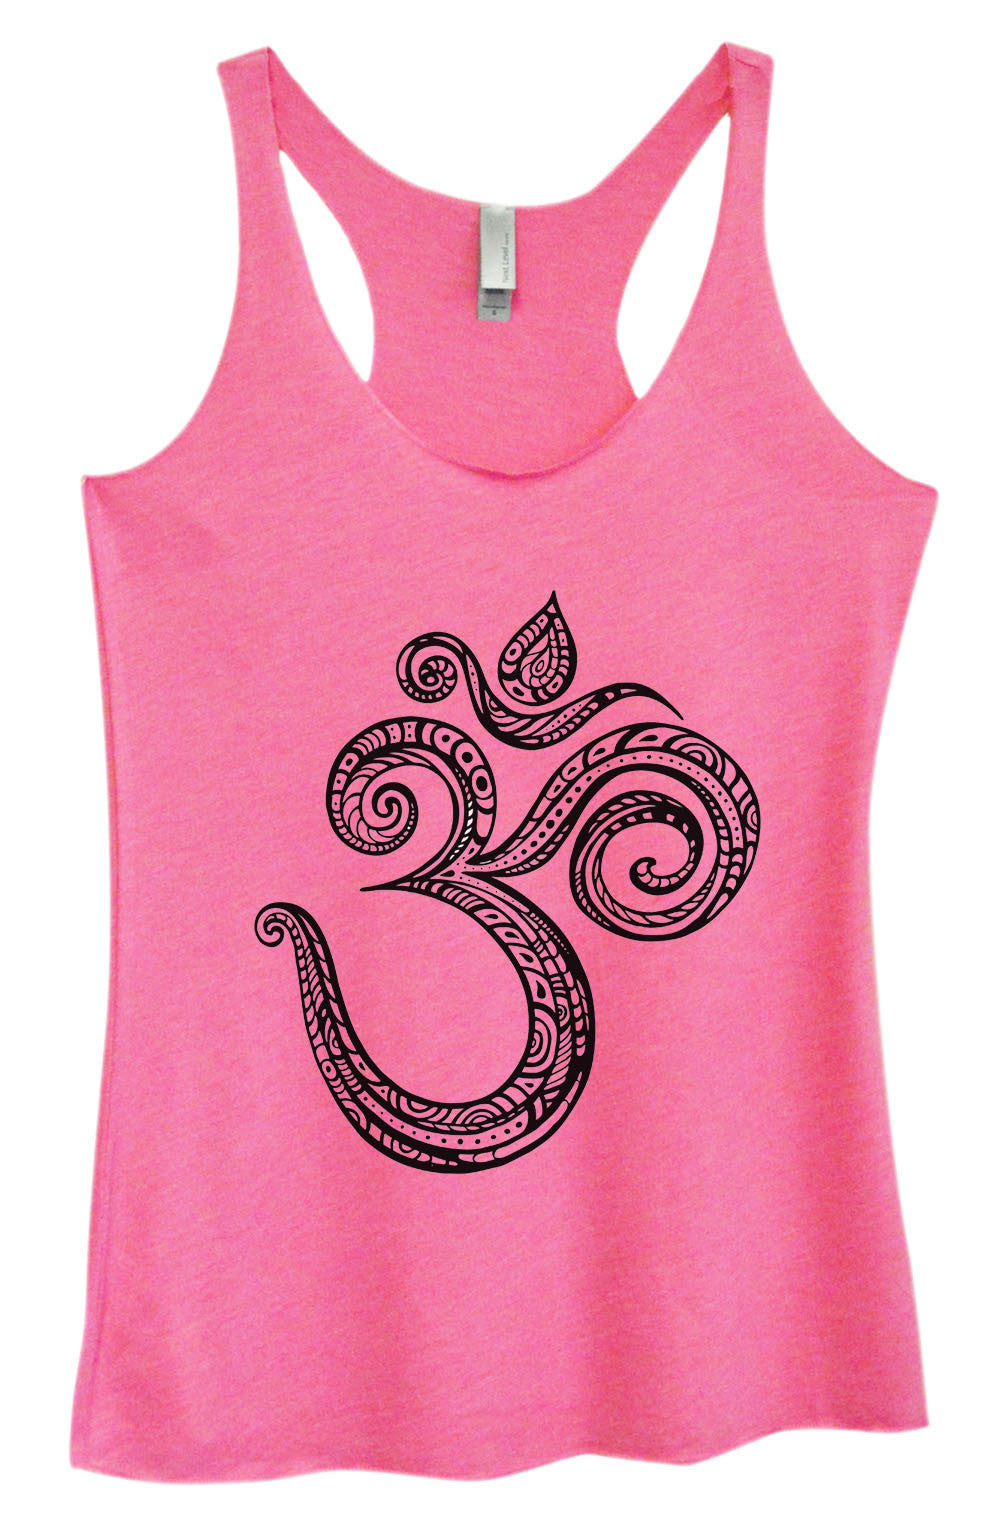 Womens Fashion Triblend Tank Top - OM - Tri-908 - Funny Shirts Tank Tops Burnouts and Triblends  - 4